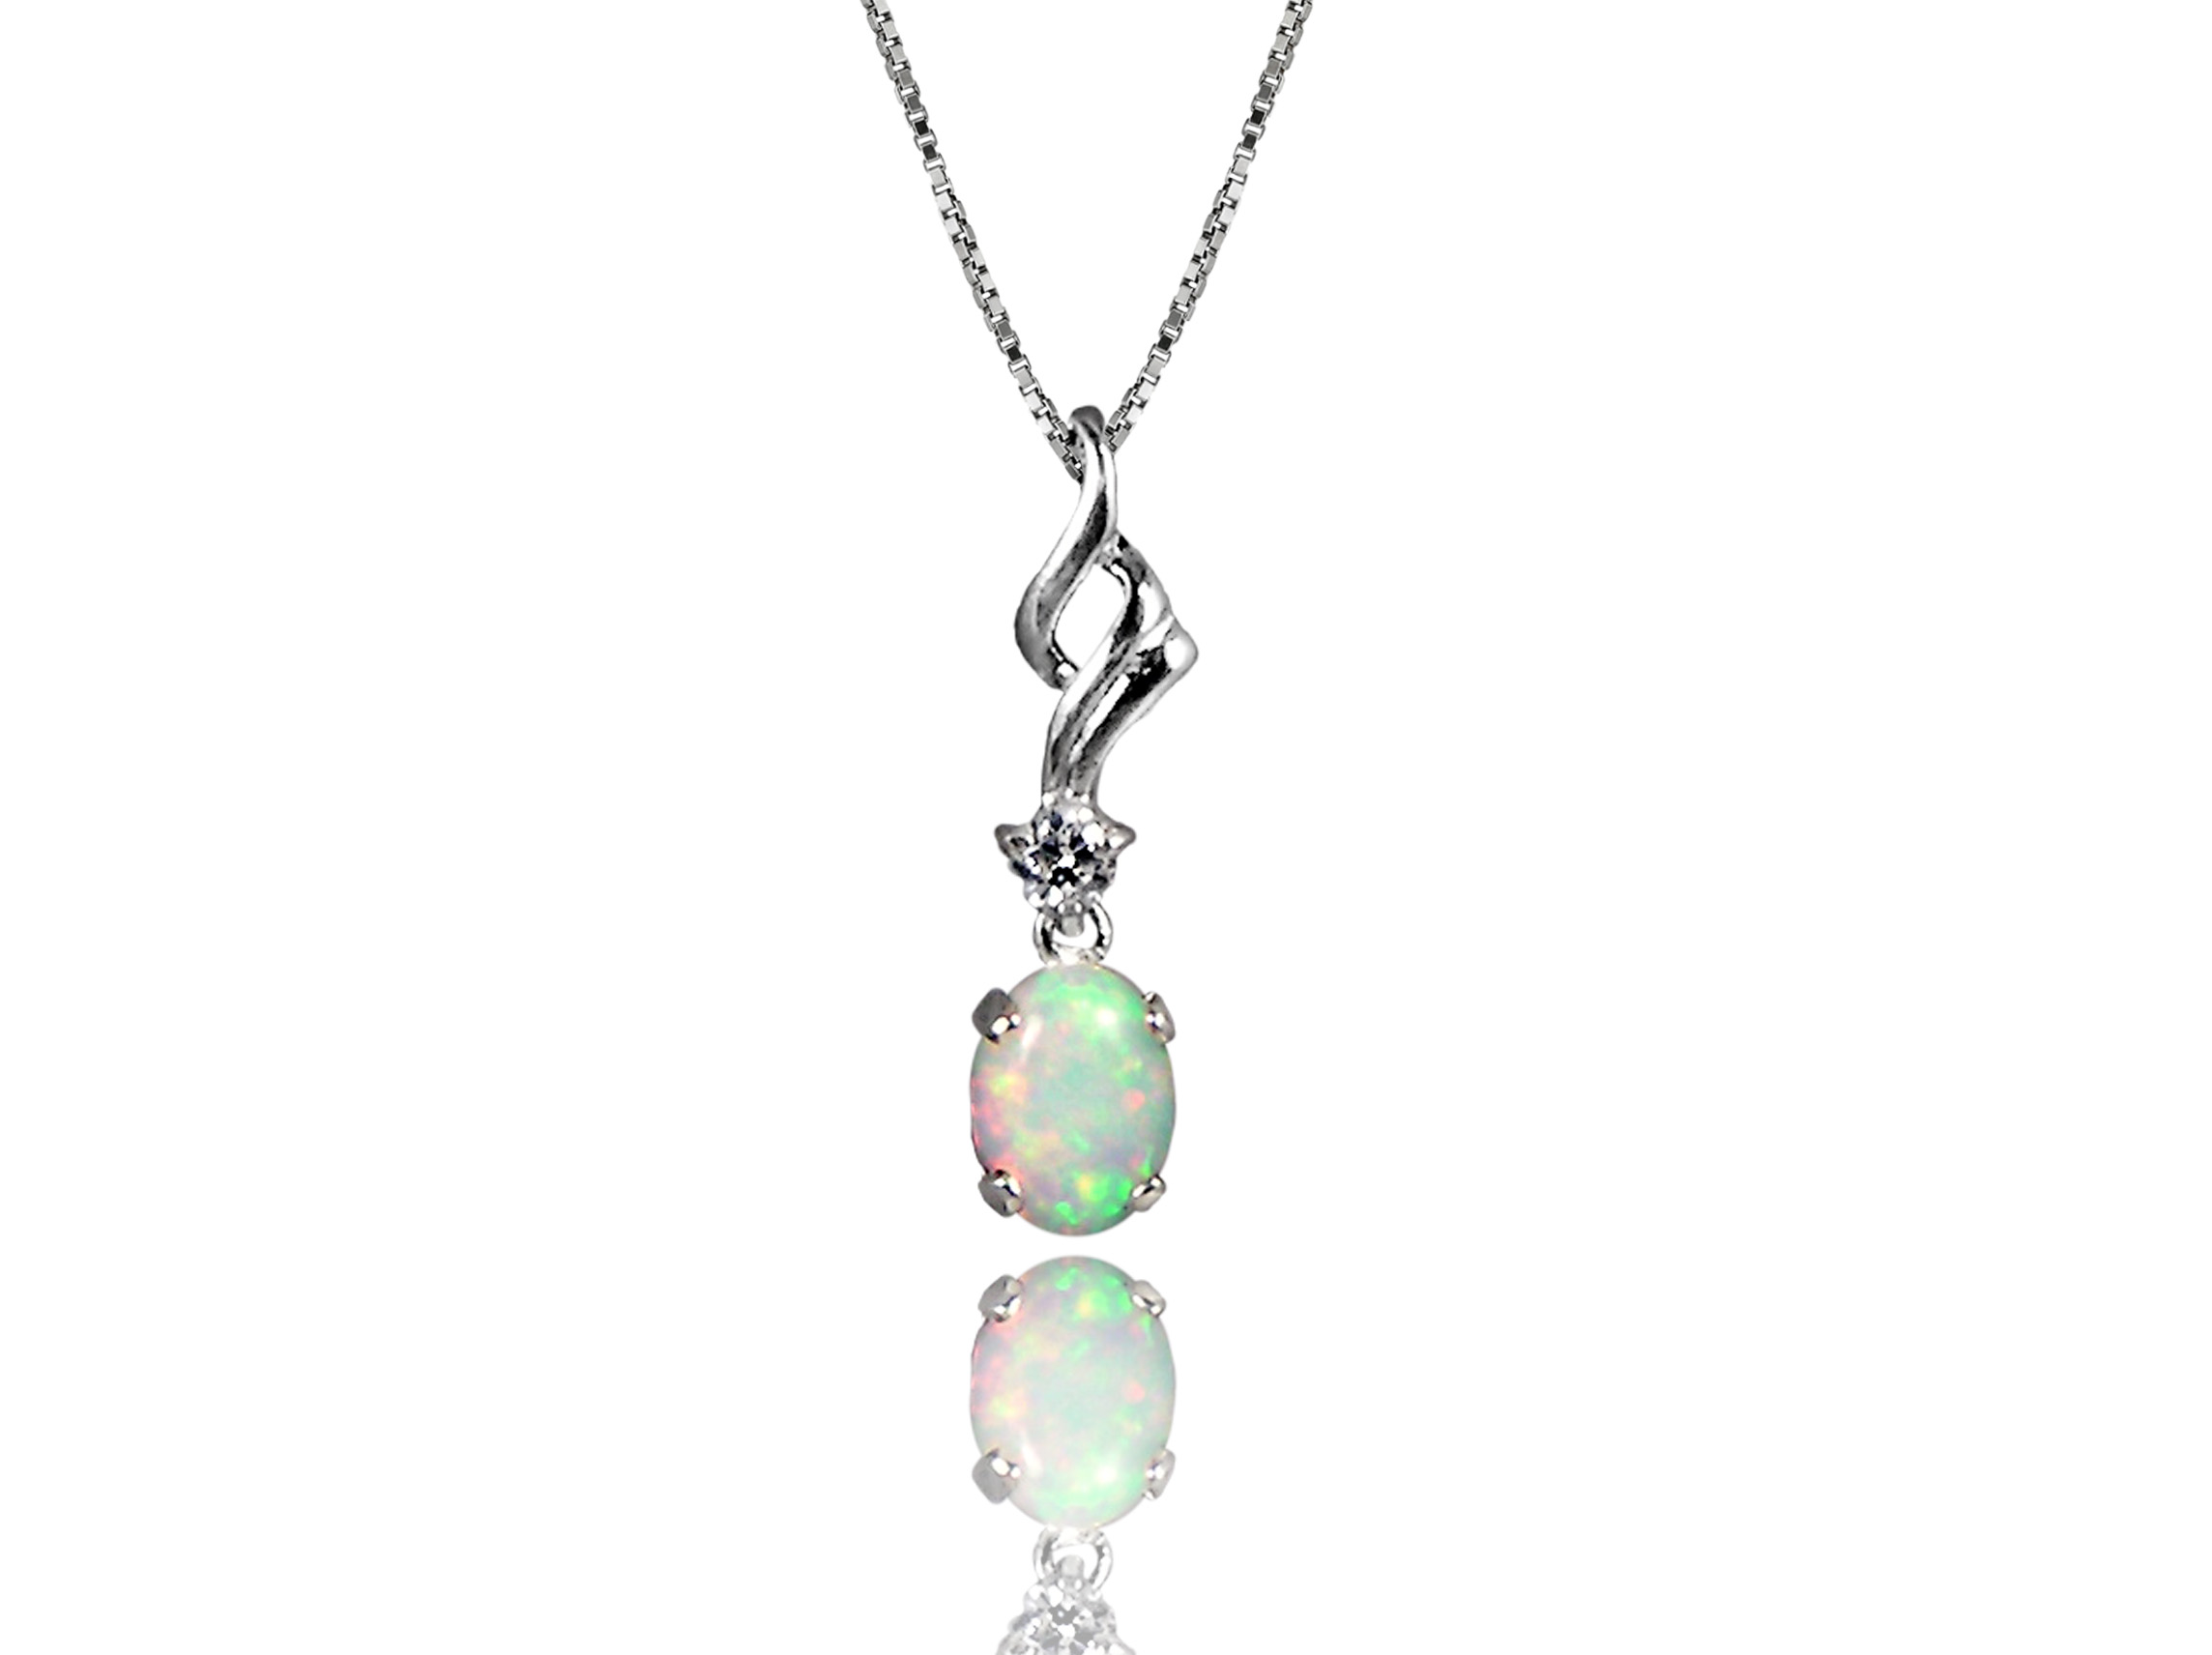 Opal pendant in Sterling silver